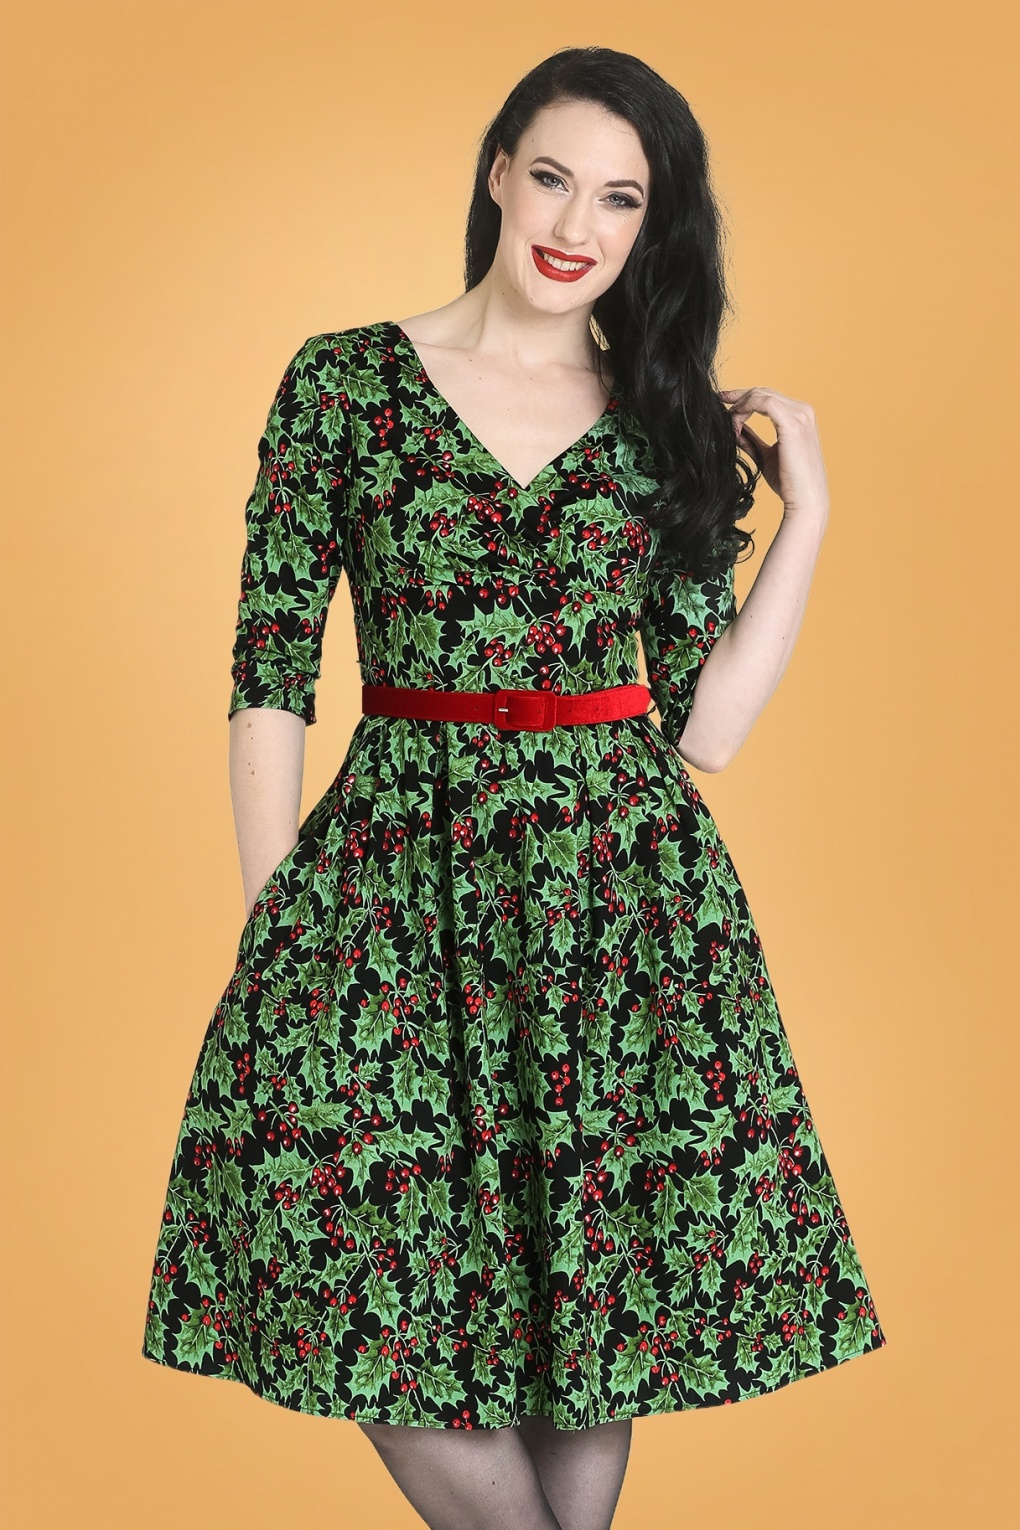 Vintage Christmas Gift Ideas for Women 50s Holly Berry Swing Dress in Black £53.44 AT vintagedancer.com